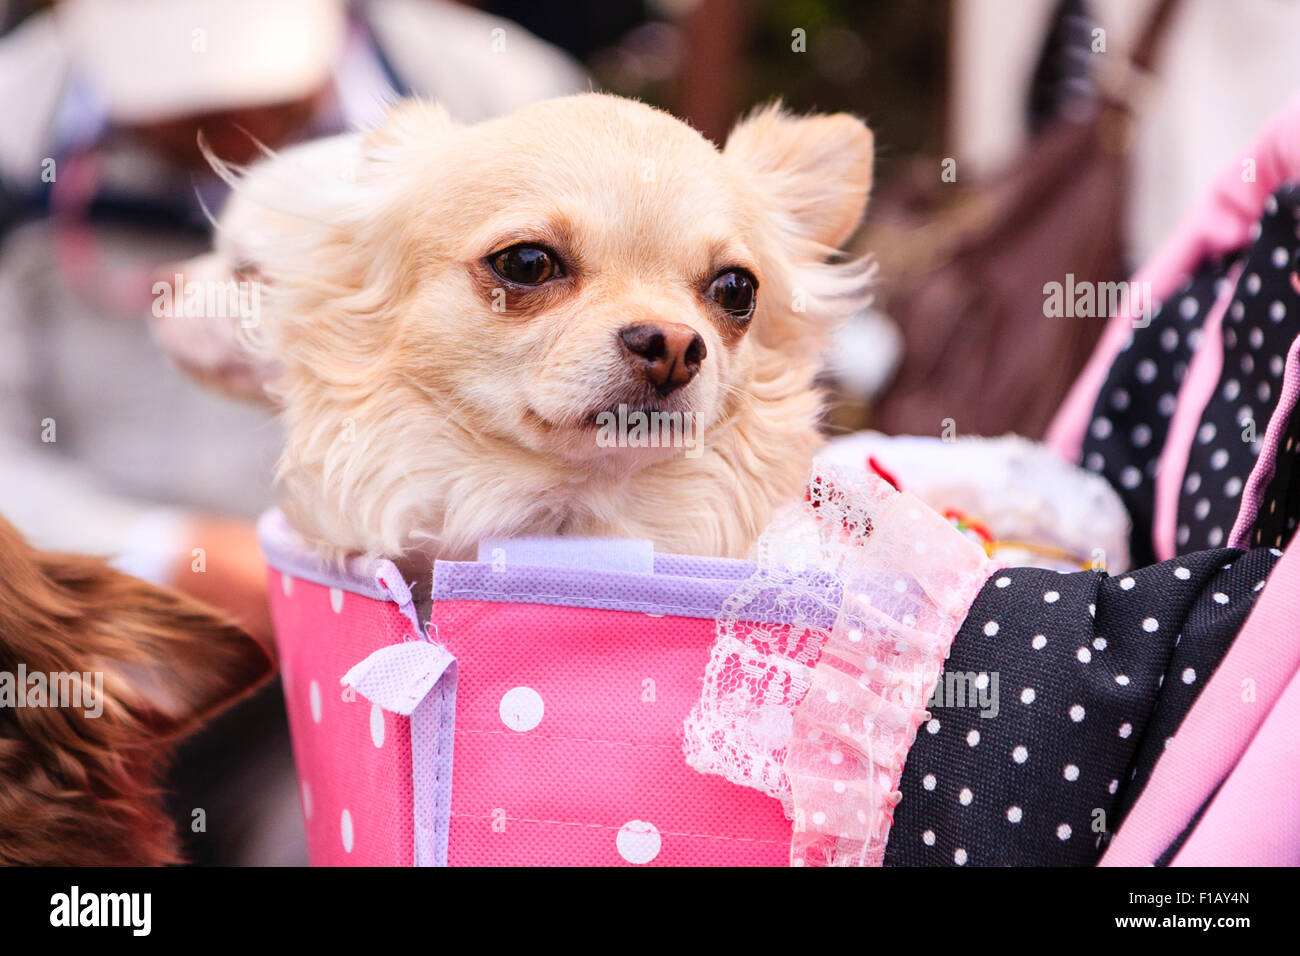 Japan, Kumamoto. Two little well groomed dogs in pink pushchair basket, one looking away, other turning to face - Stock Image